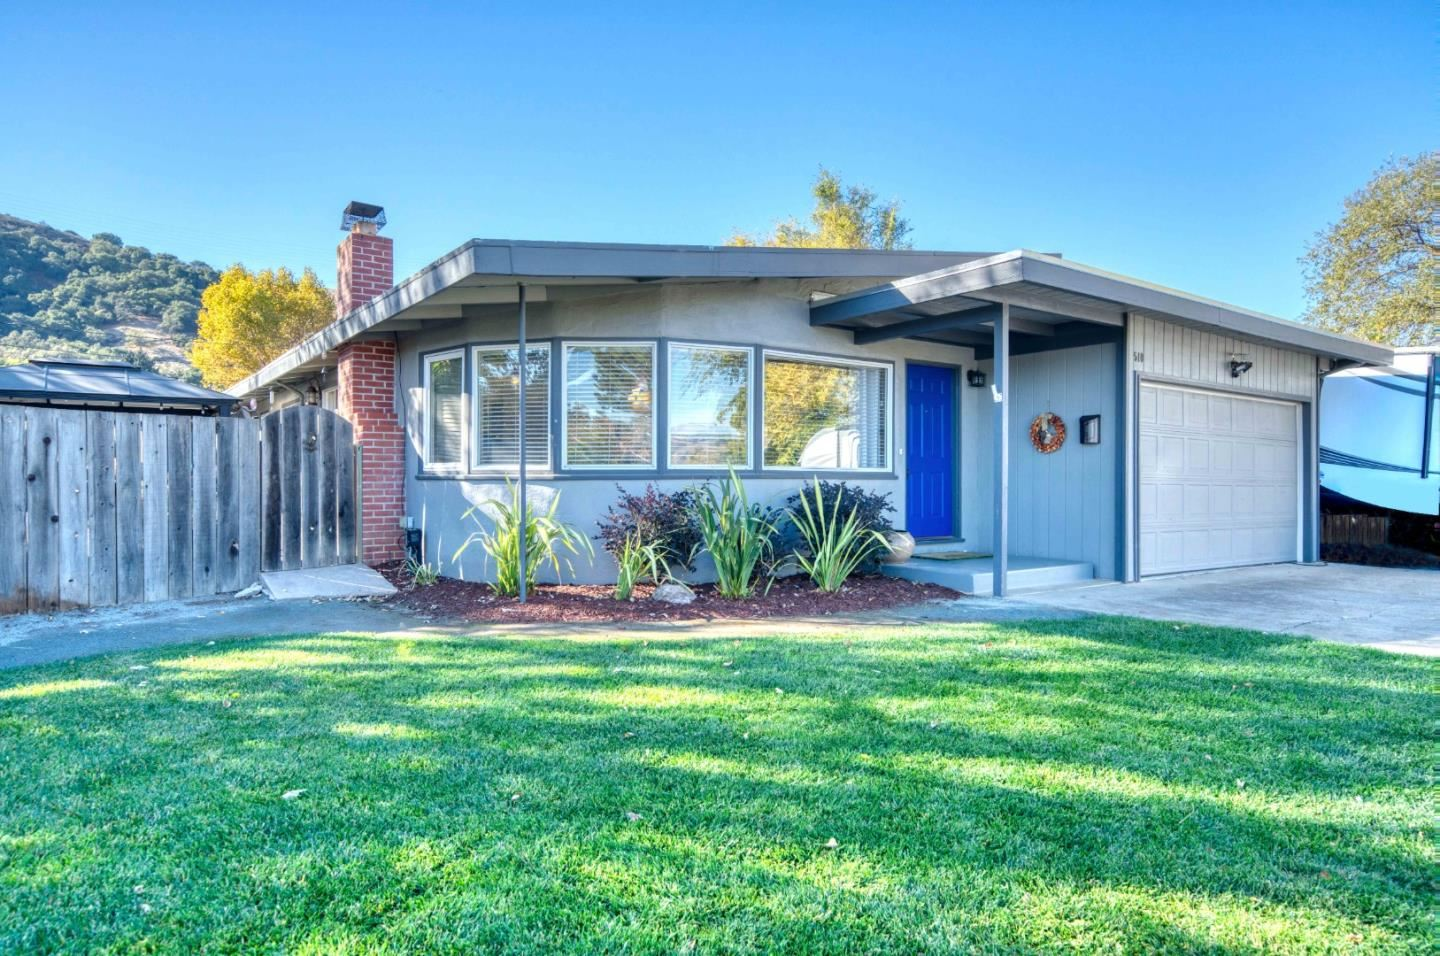 Photo for 510 Claremont DR, MORGAN HILL, CA 95037 (MLS # ML81817798)